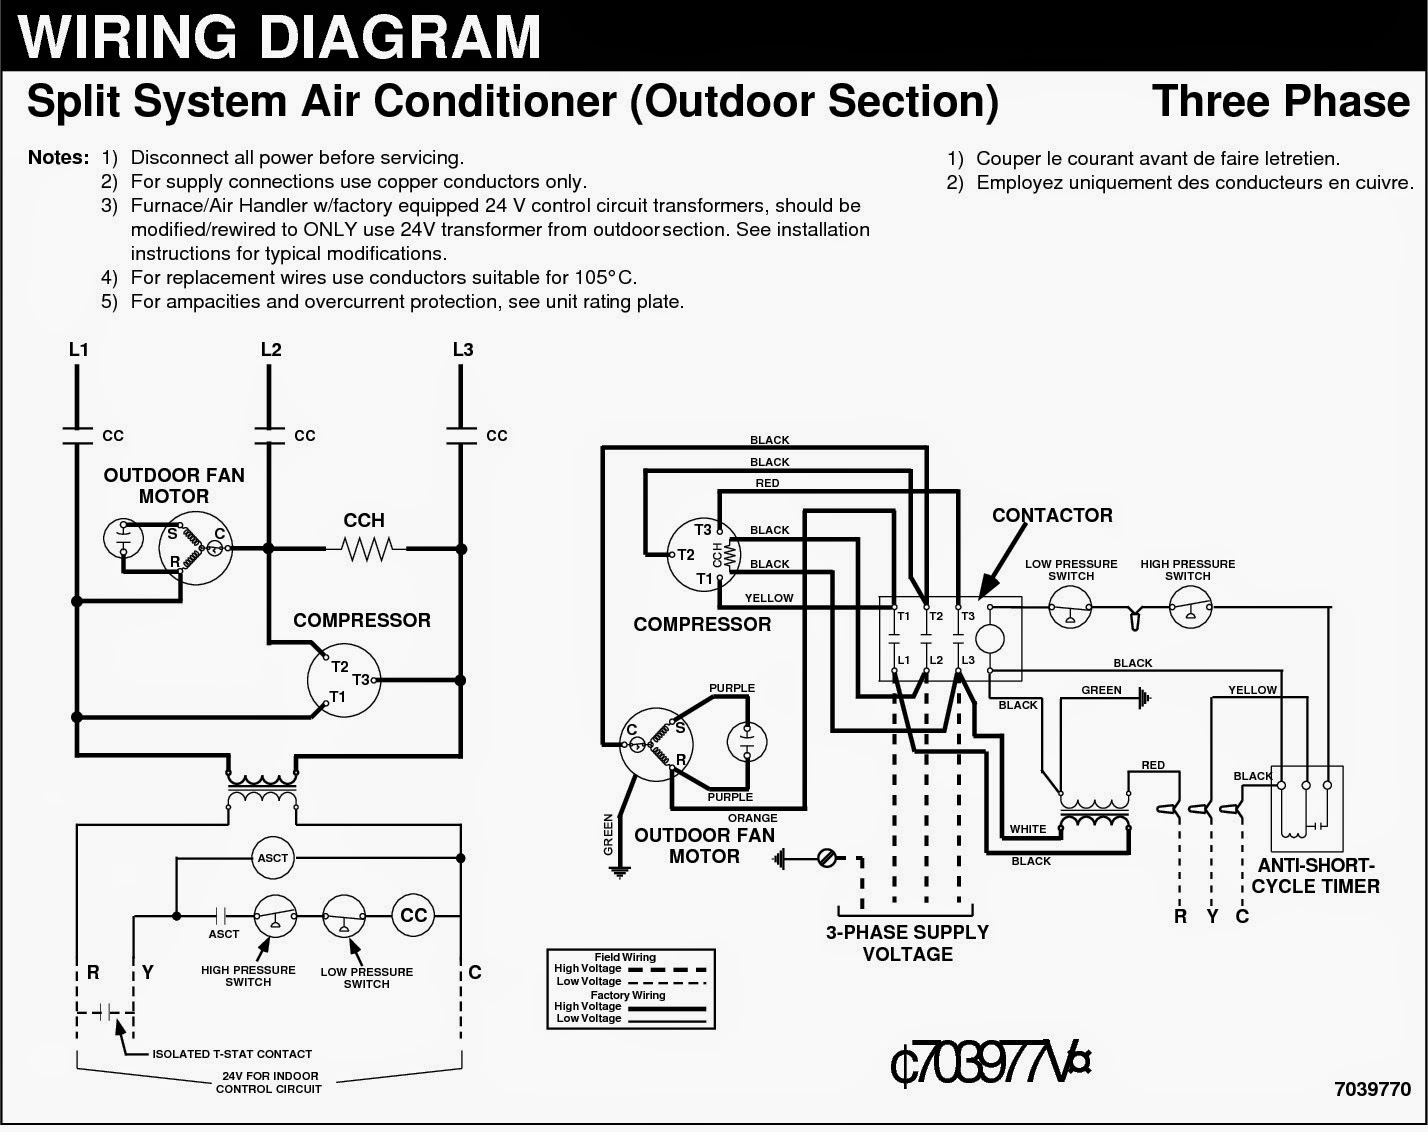 3+phase electrical wiring diagrams for air conditioning systems part two cold room wiring diagram at aneh.co